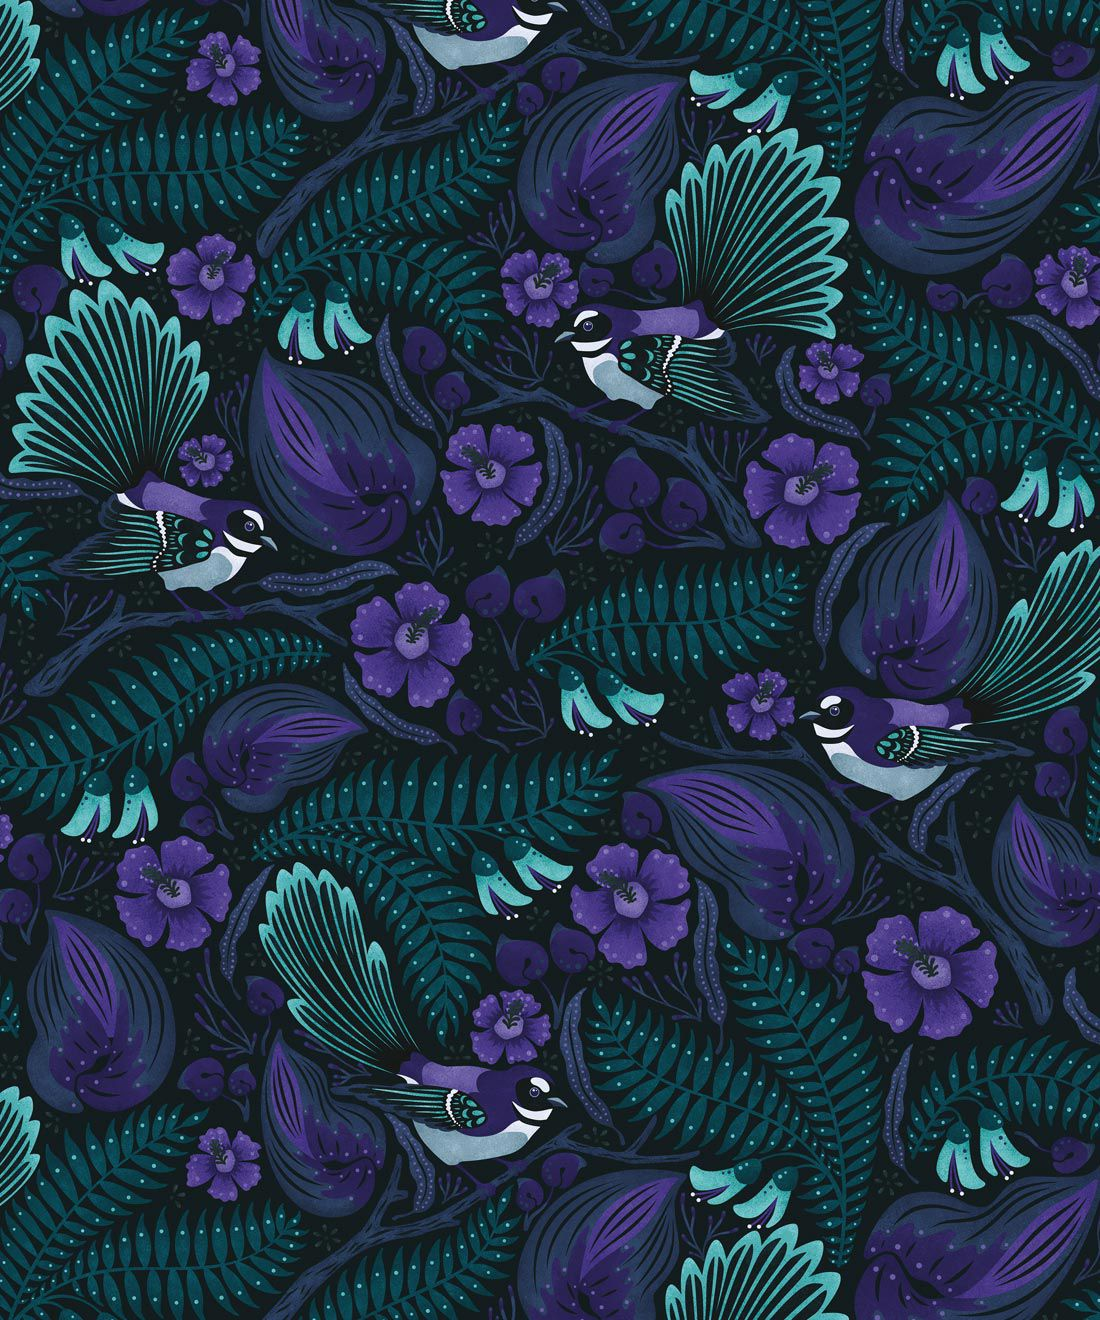 Faintails Wallpaper • New Zealand • Bird Wallpaper • Kowhai Tree • Kowhai Flowers • Dark Purple Blue Wallpaper • Midnight Colorway